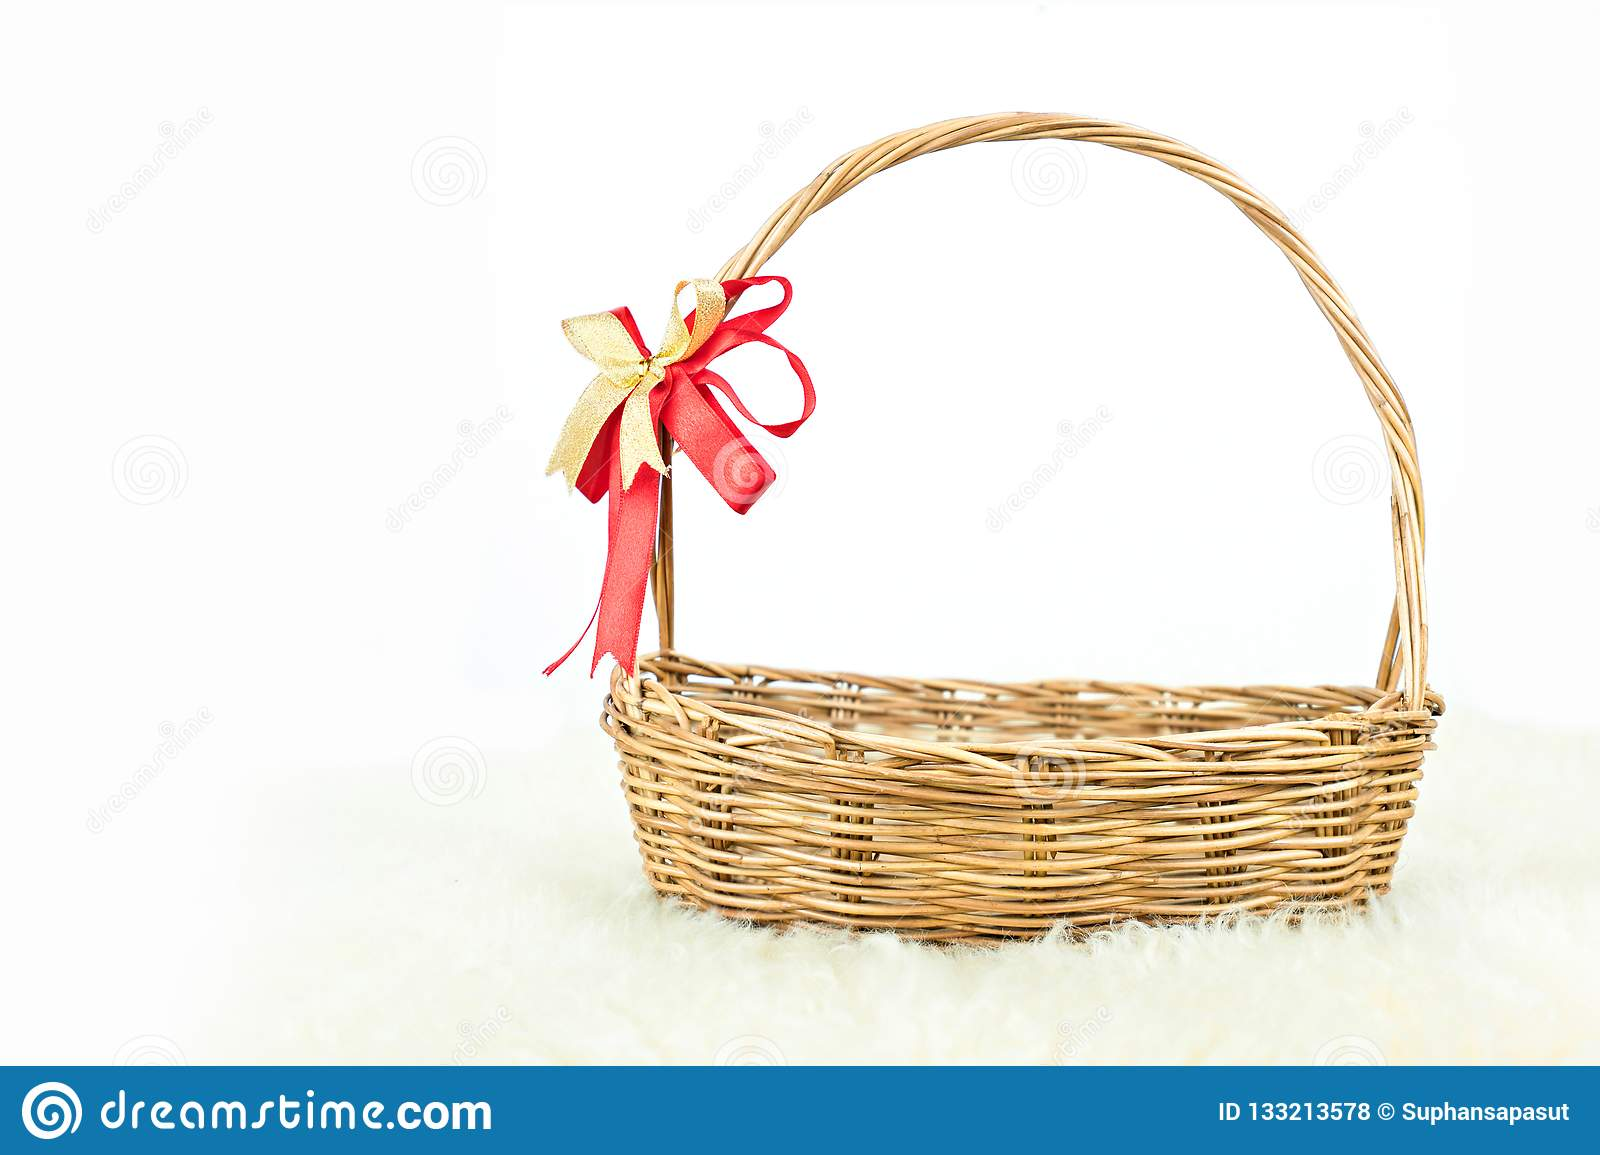 Empty wicker basket with red and gold ribbon isolated on white